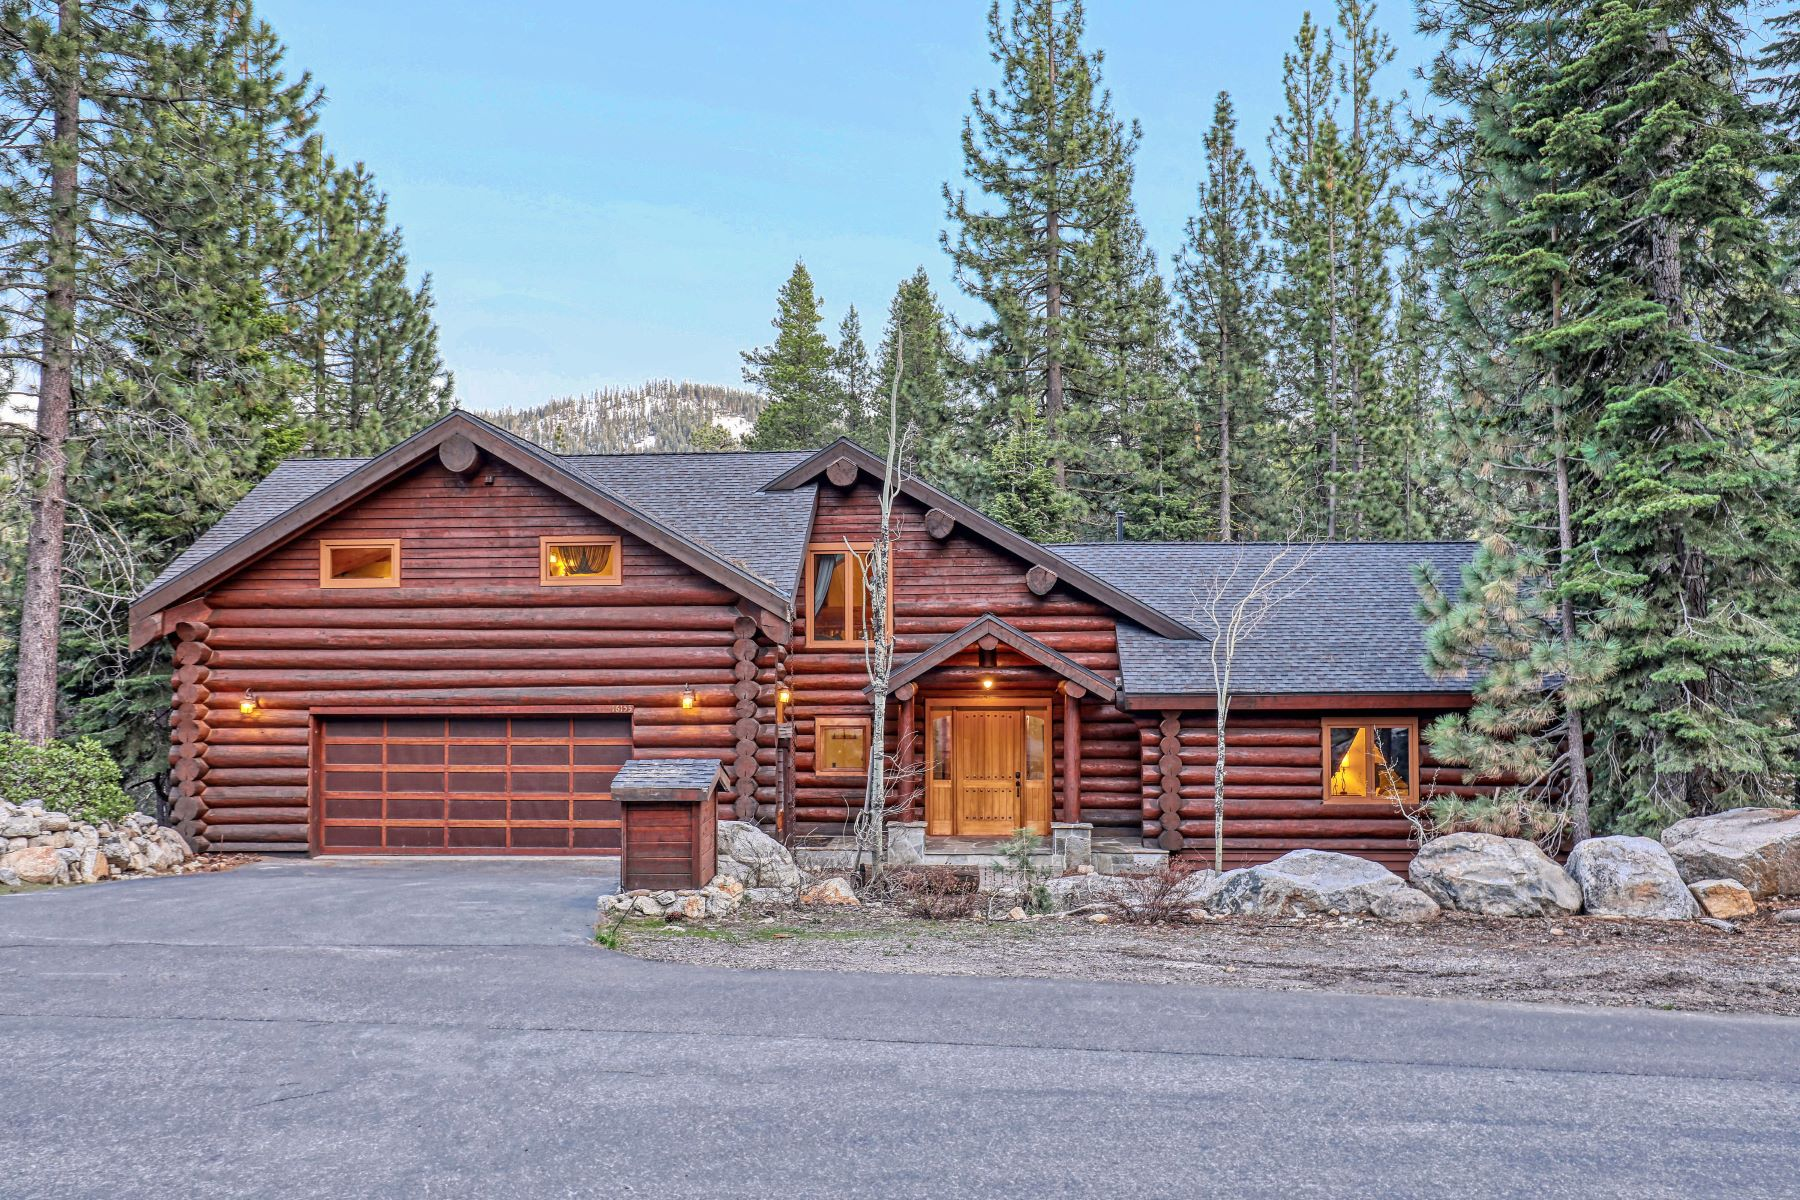 Single Family Homes for Active at Nestled among the trees in the coveted Wolfe Estates 16153 Wolfe Drive Truckee, California 96161 United States